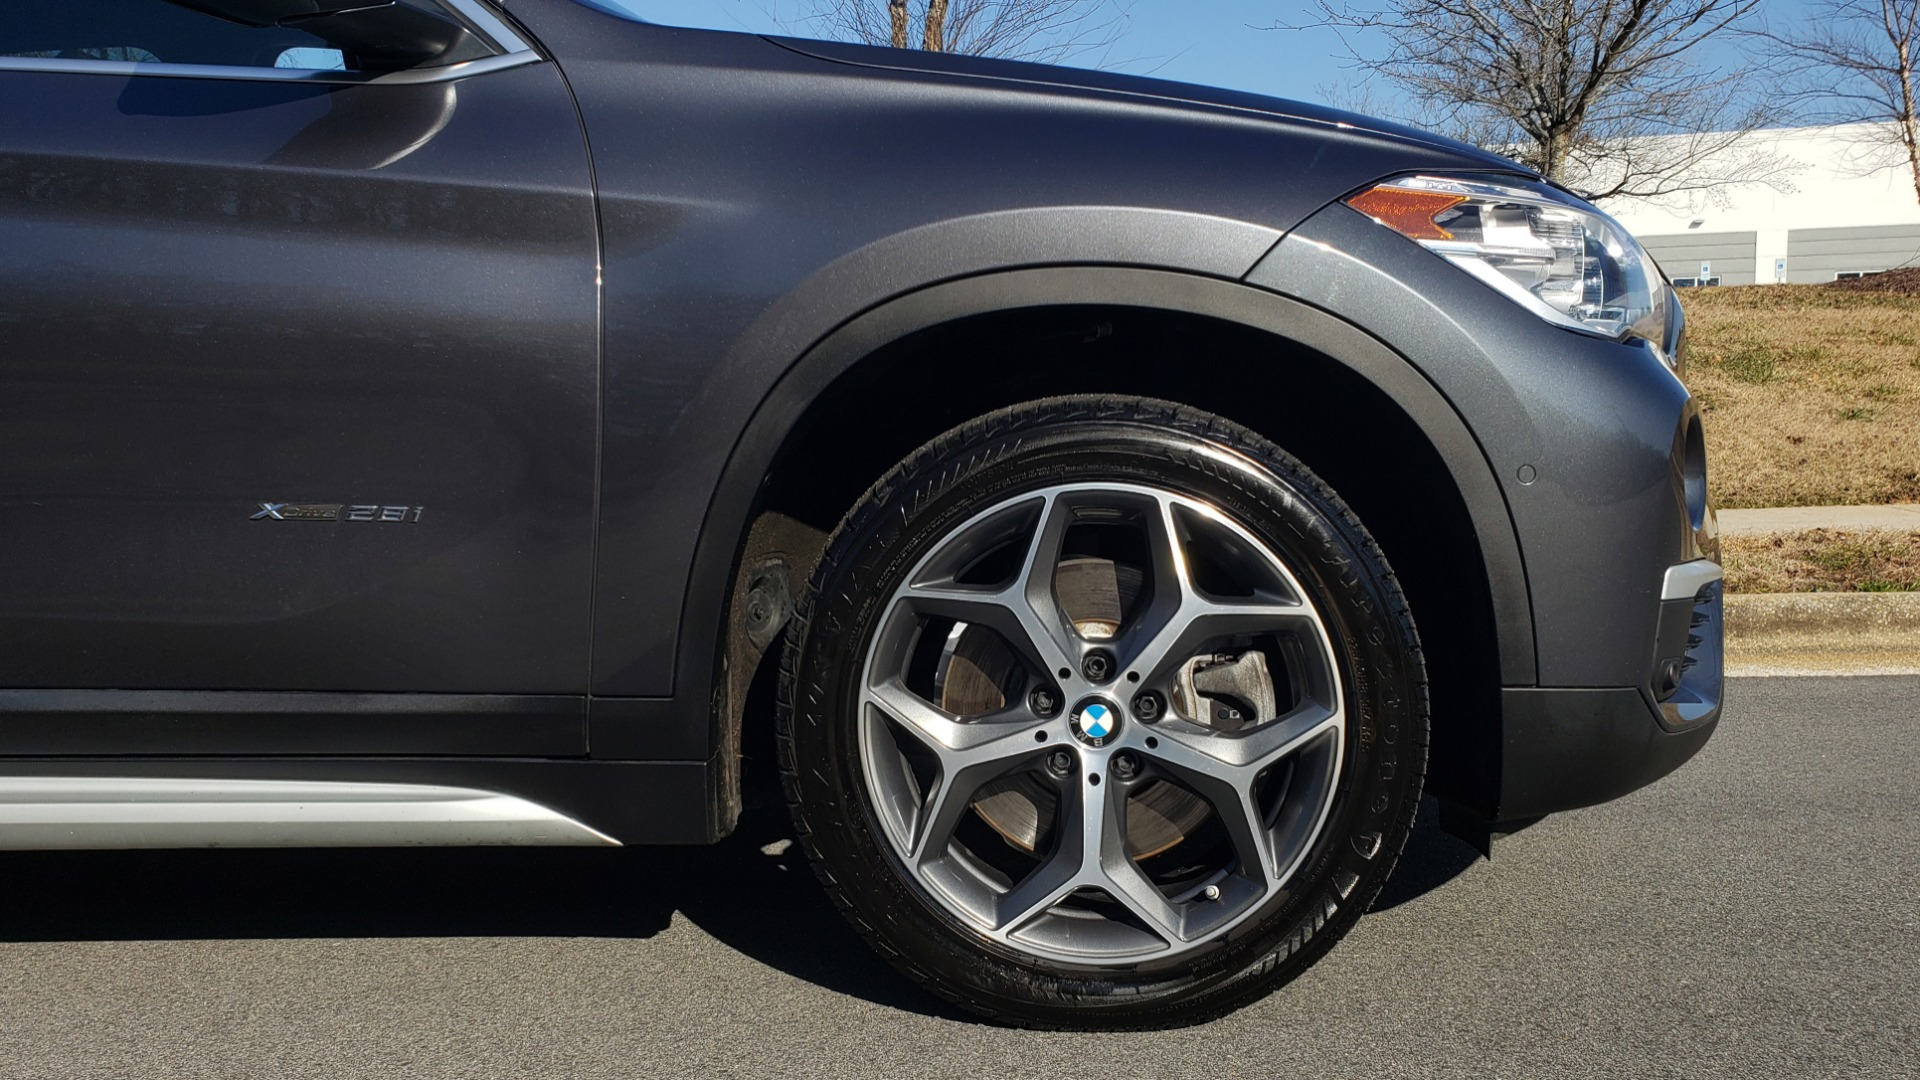 Used 2017 BMW X1 XDRIVE28I / PREM / TECH / DRVR ASST PLUS / COLD WTHR / REARVIEW for sale $26,995 at Formula Imports in Charlotte NC 28227 83